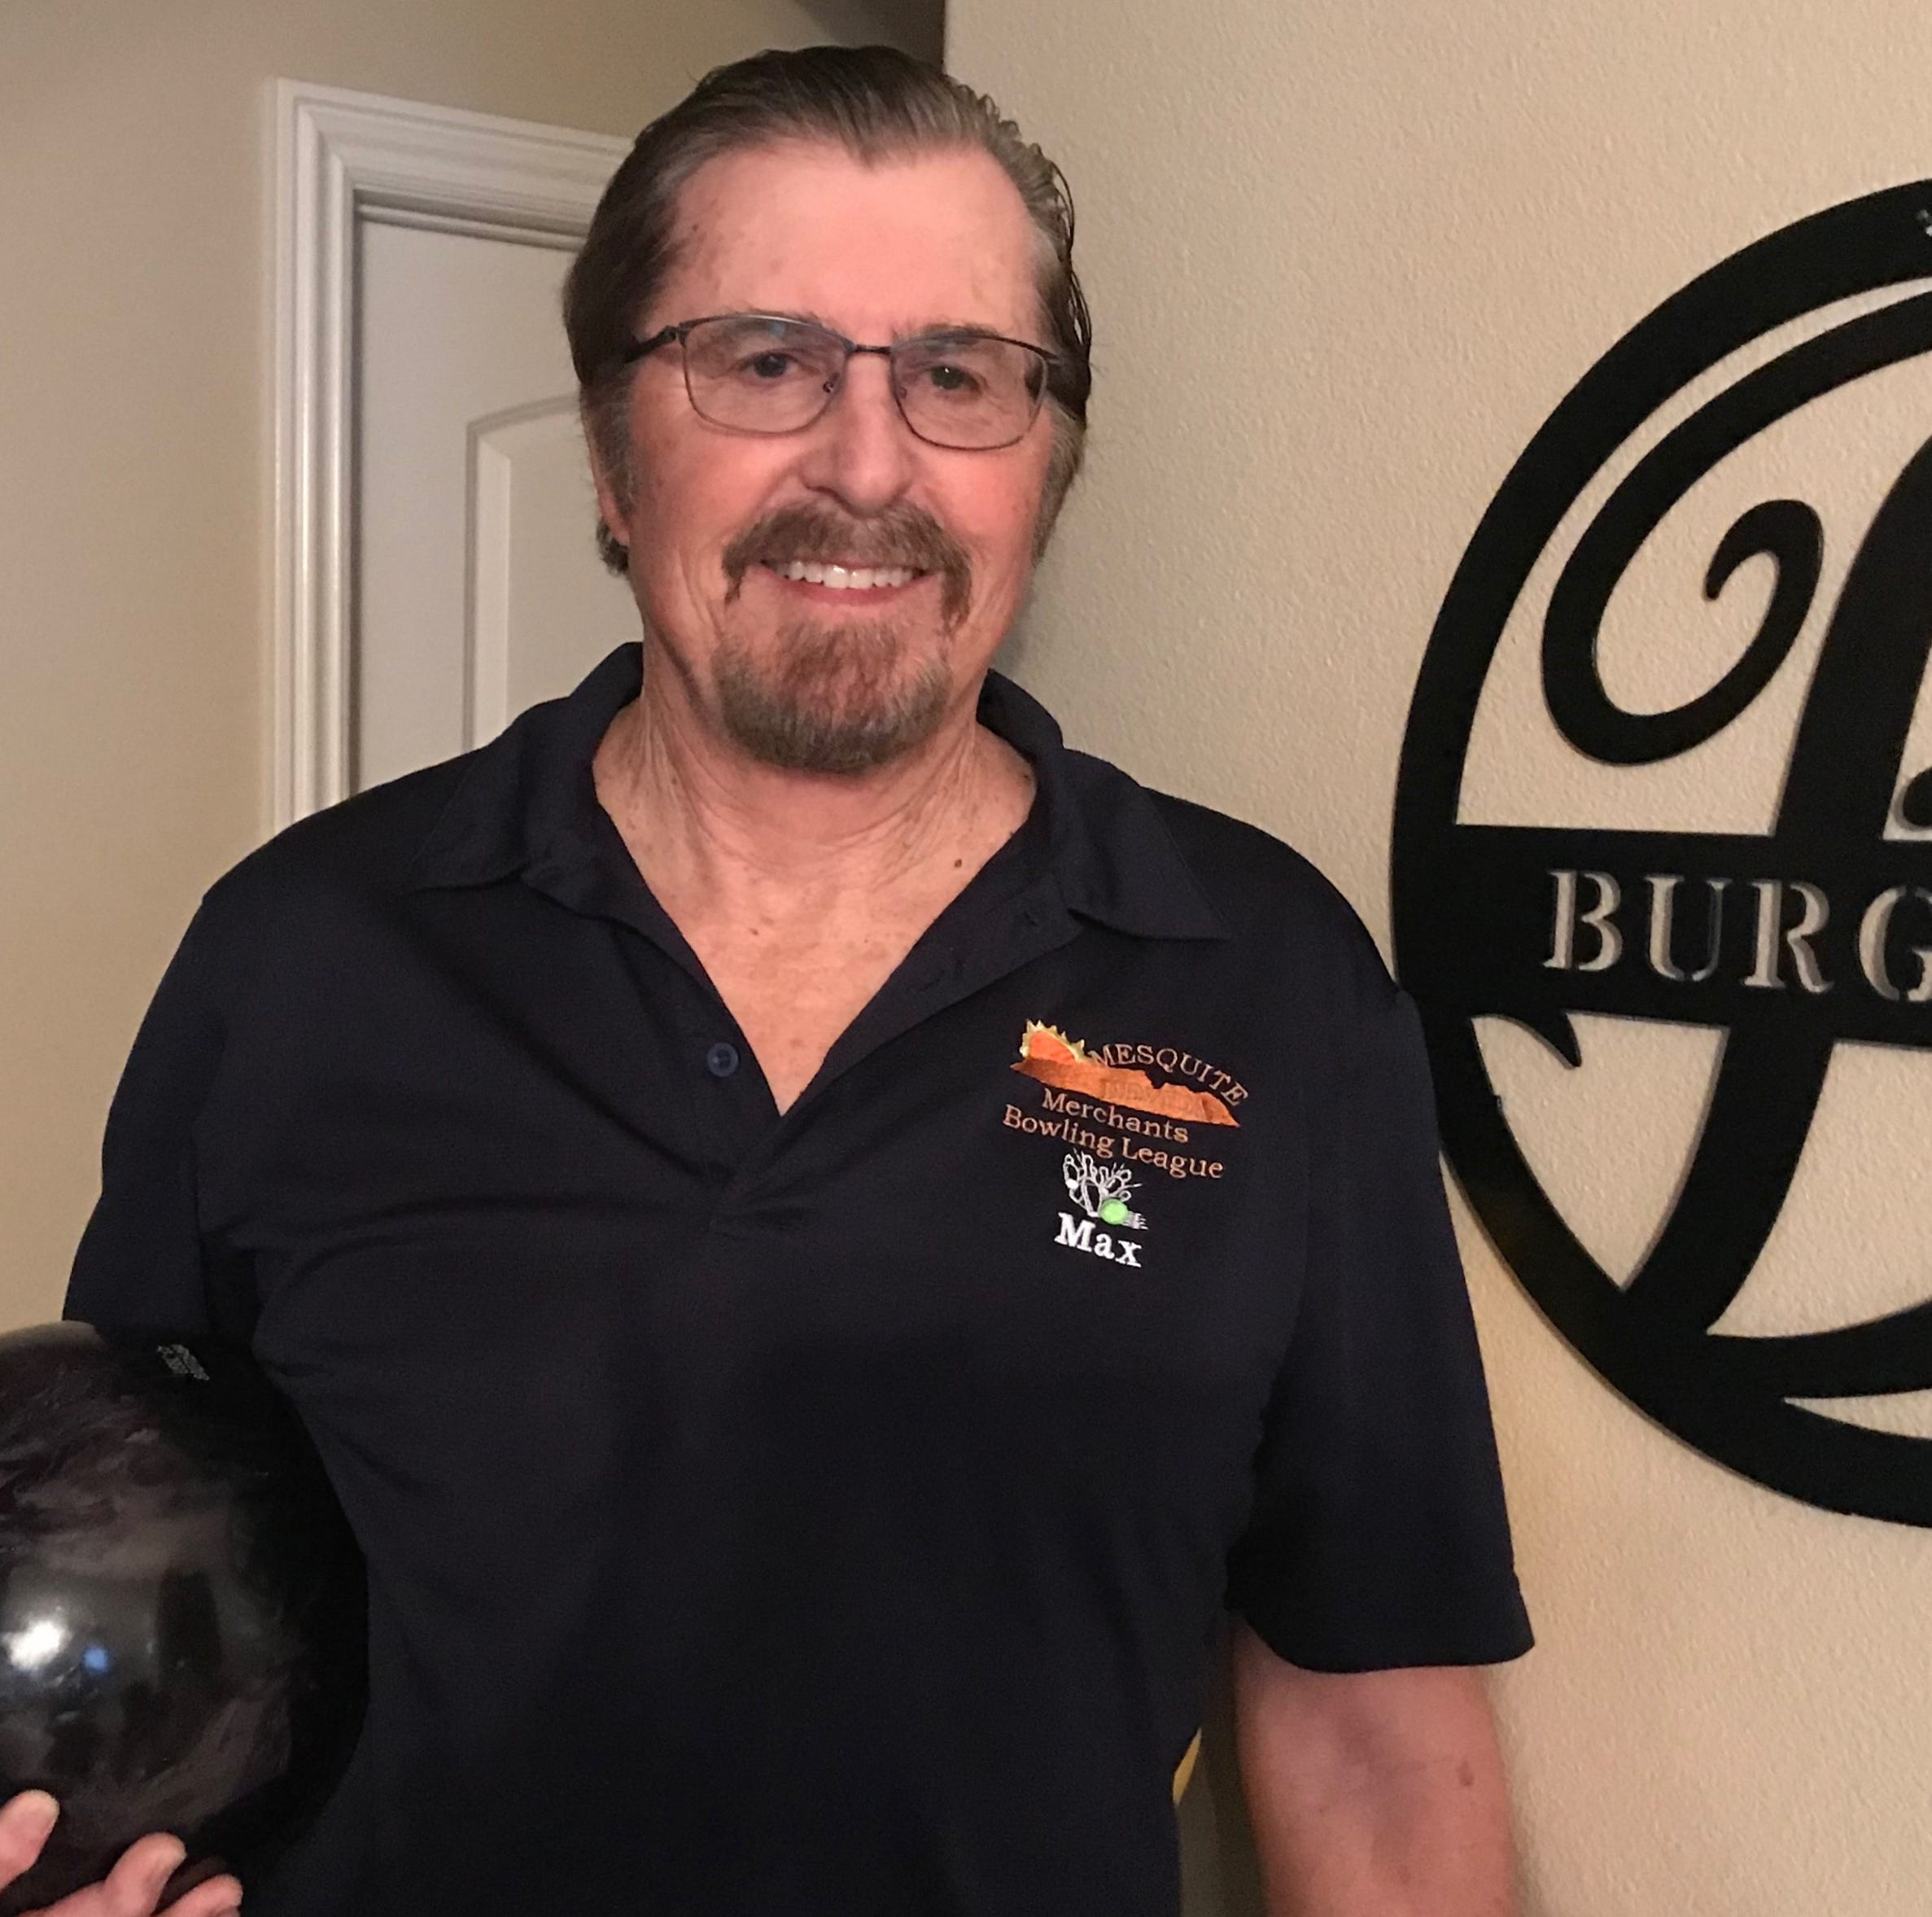 Longtime dentist scorching the lanes in Mesquite bowling league